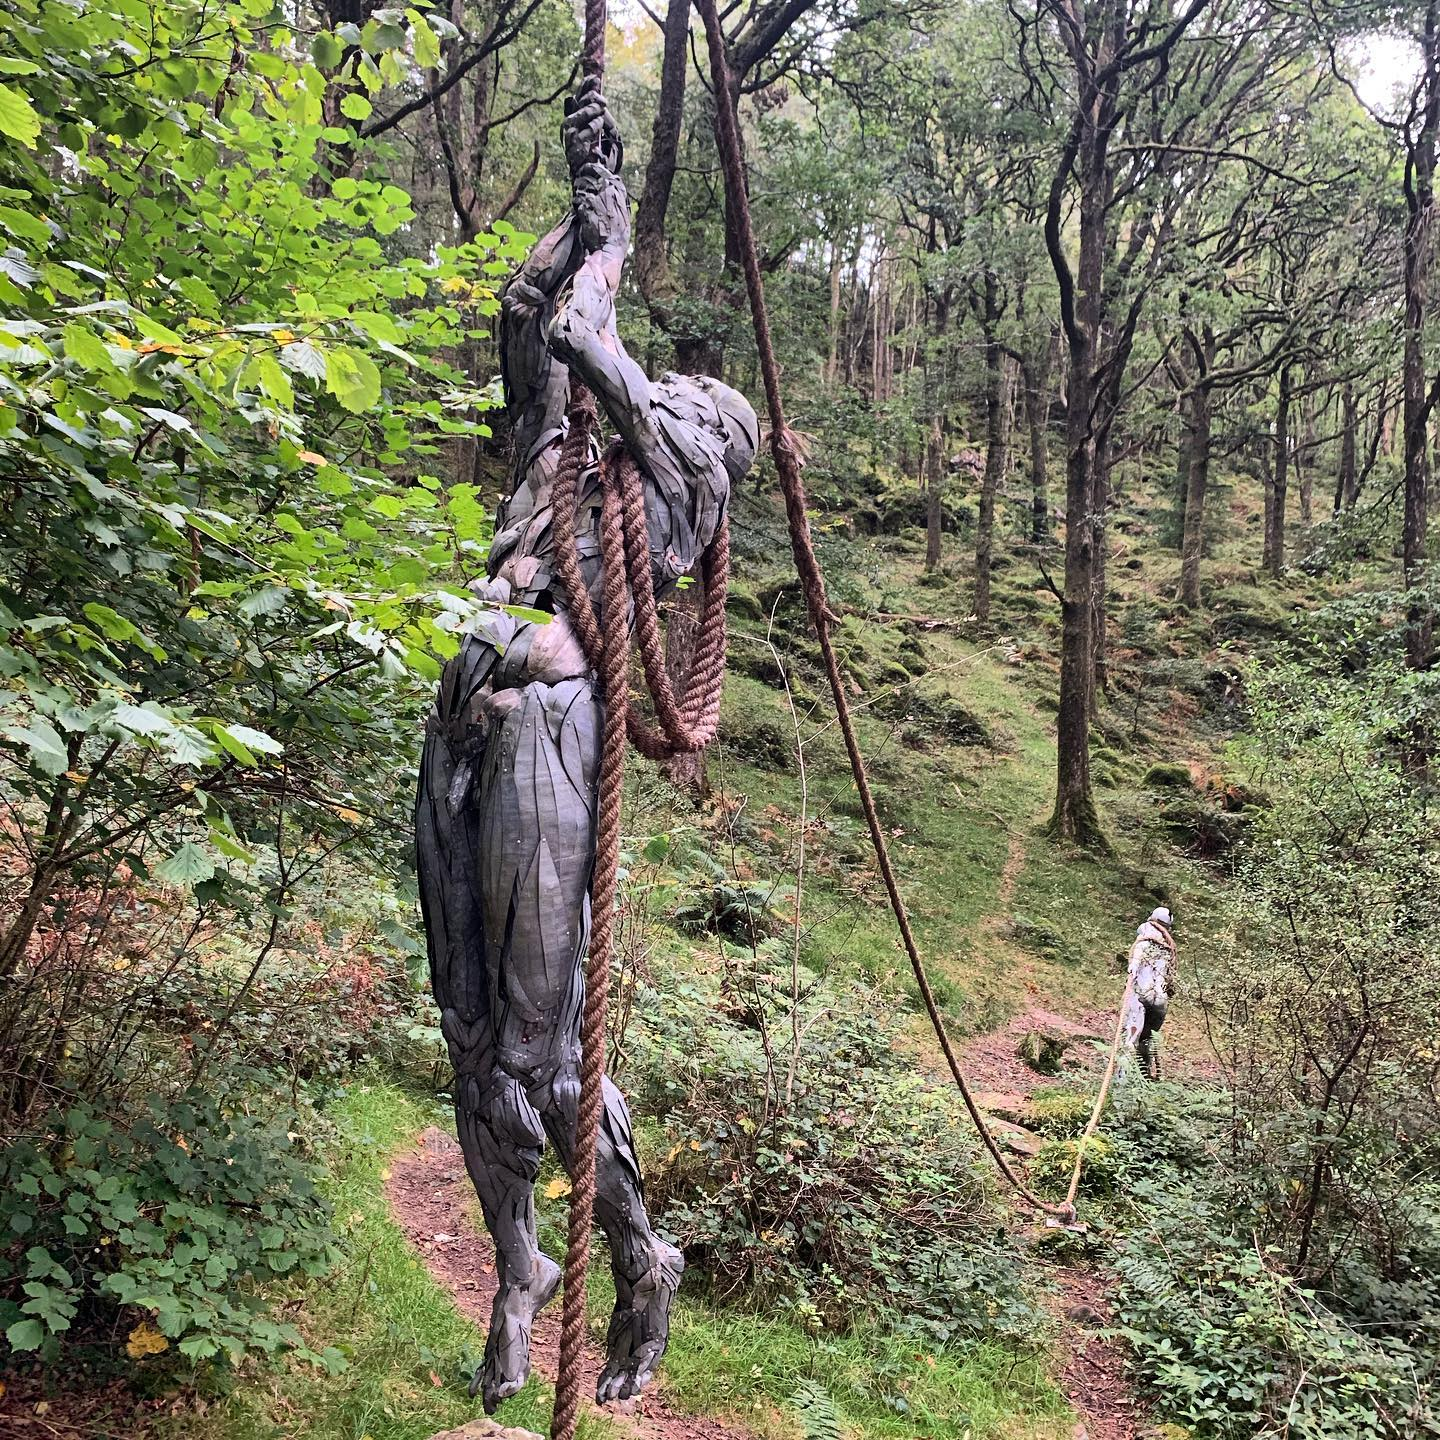 When sculpture just works and makes a beautiful setting even better, Mea Culpa By Robert Bryce Muir @grizedale_sculpture_